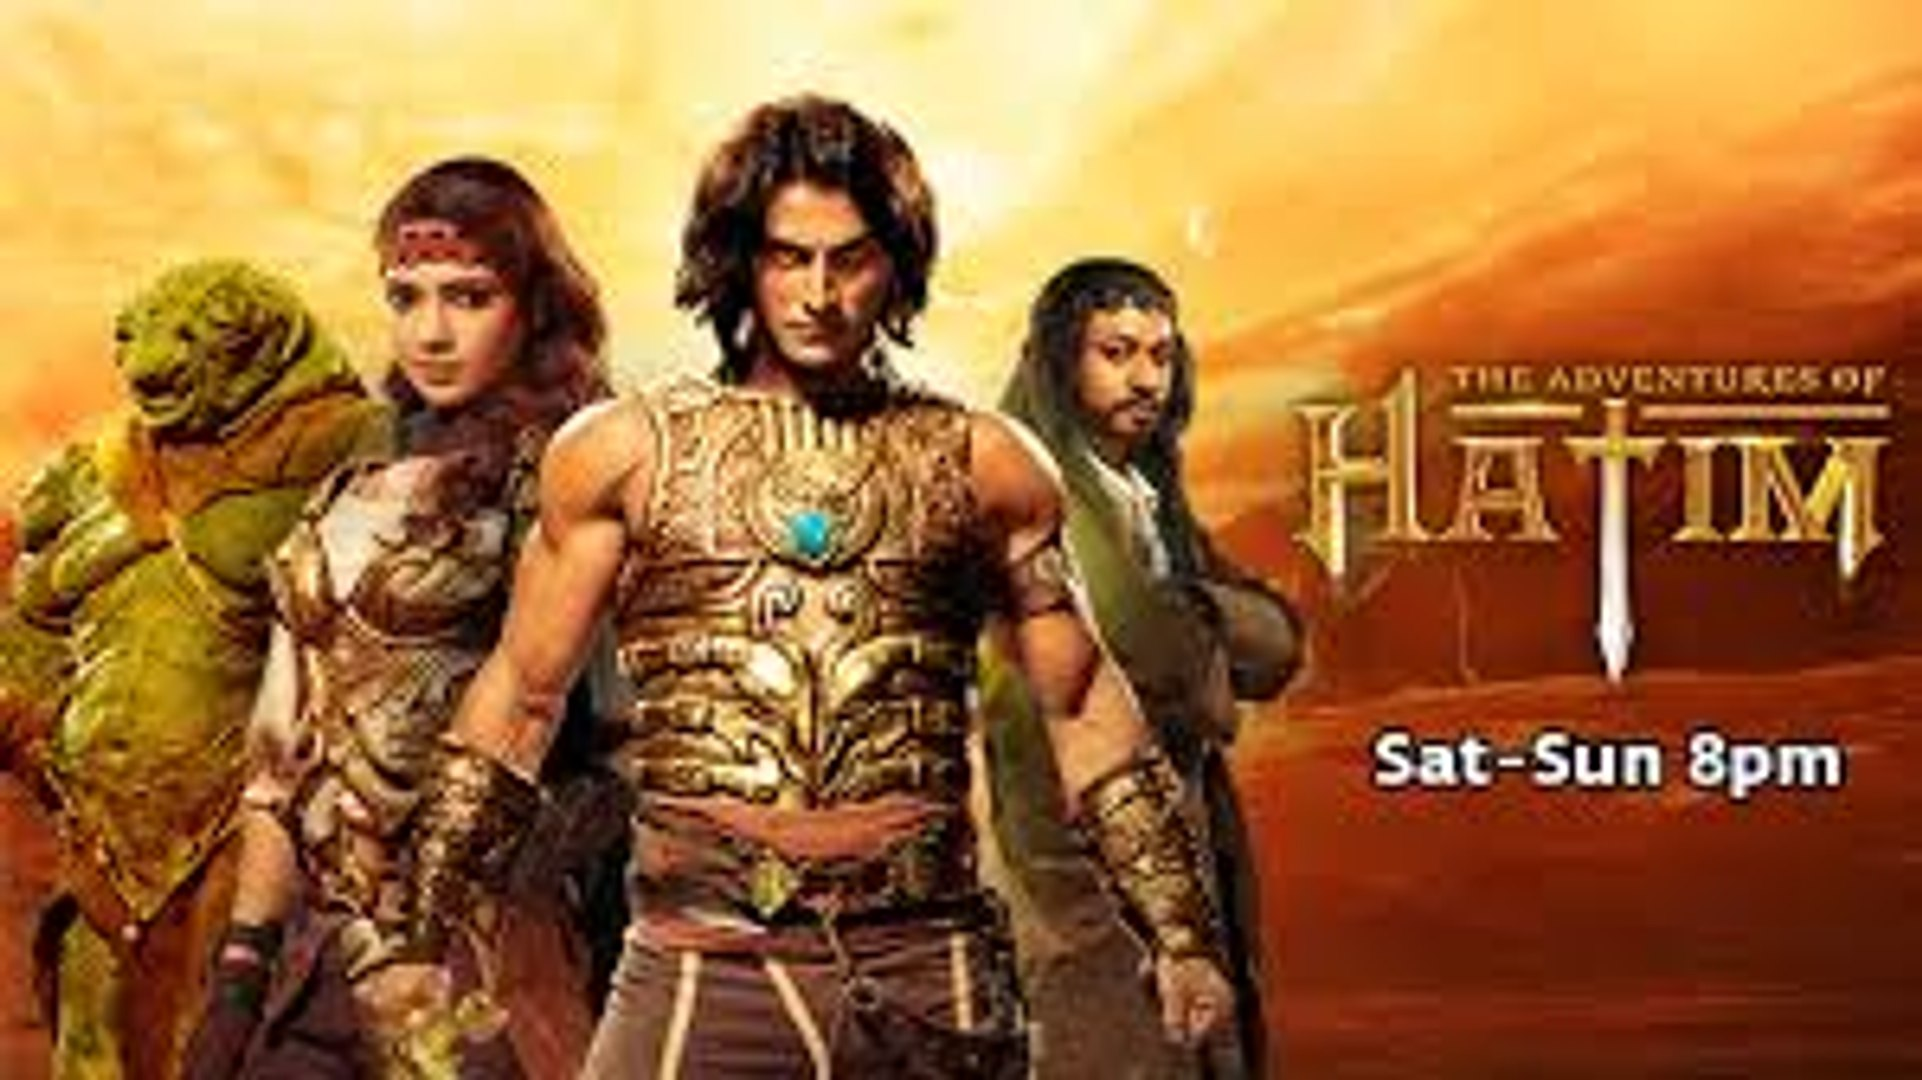 The Adventure Of Hatim Part 2 3 September 2016